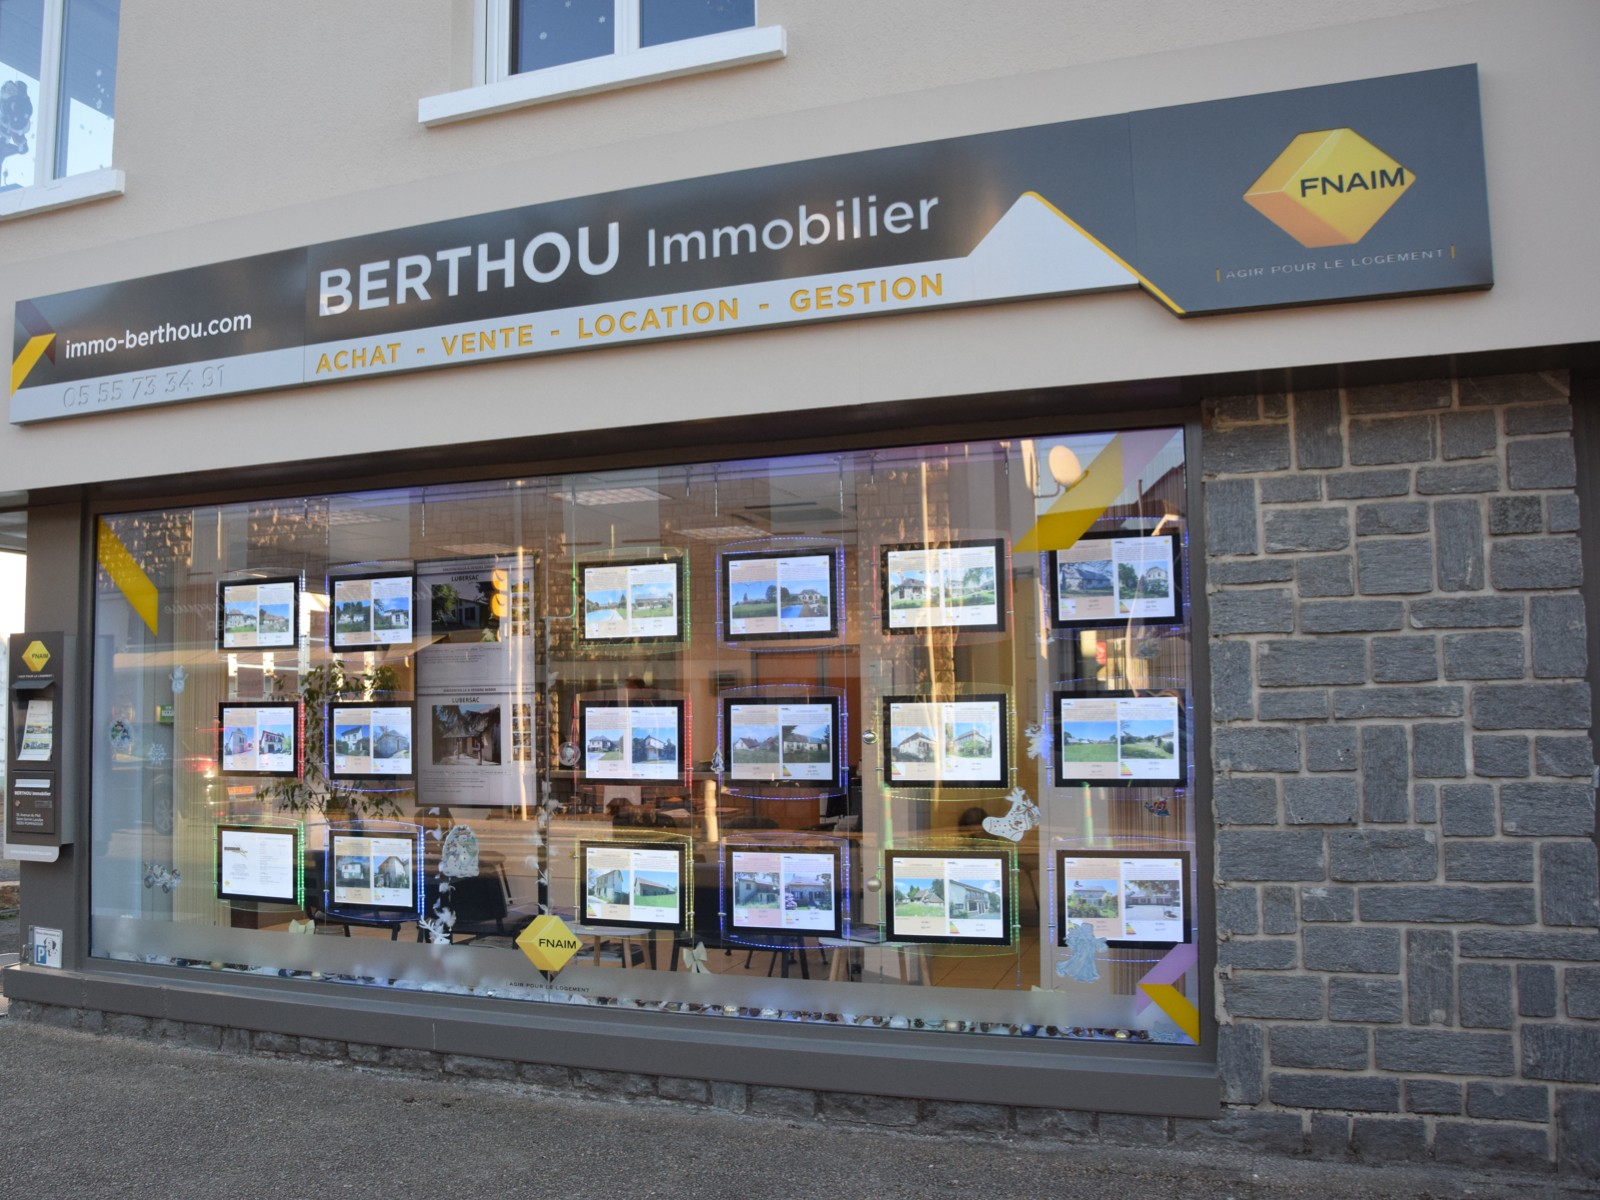 Agence immobili re berthou immobilier arnac pompadour for Argence immobilier